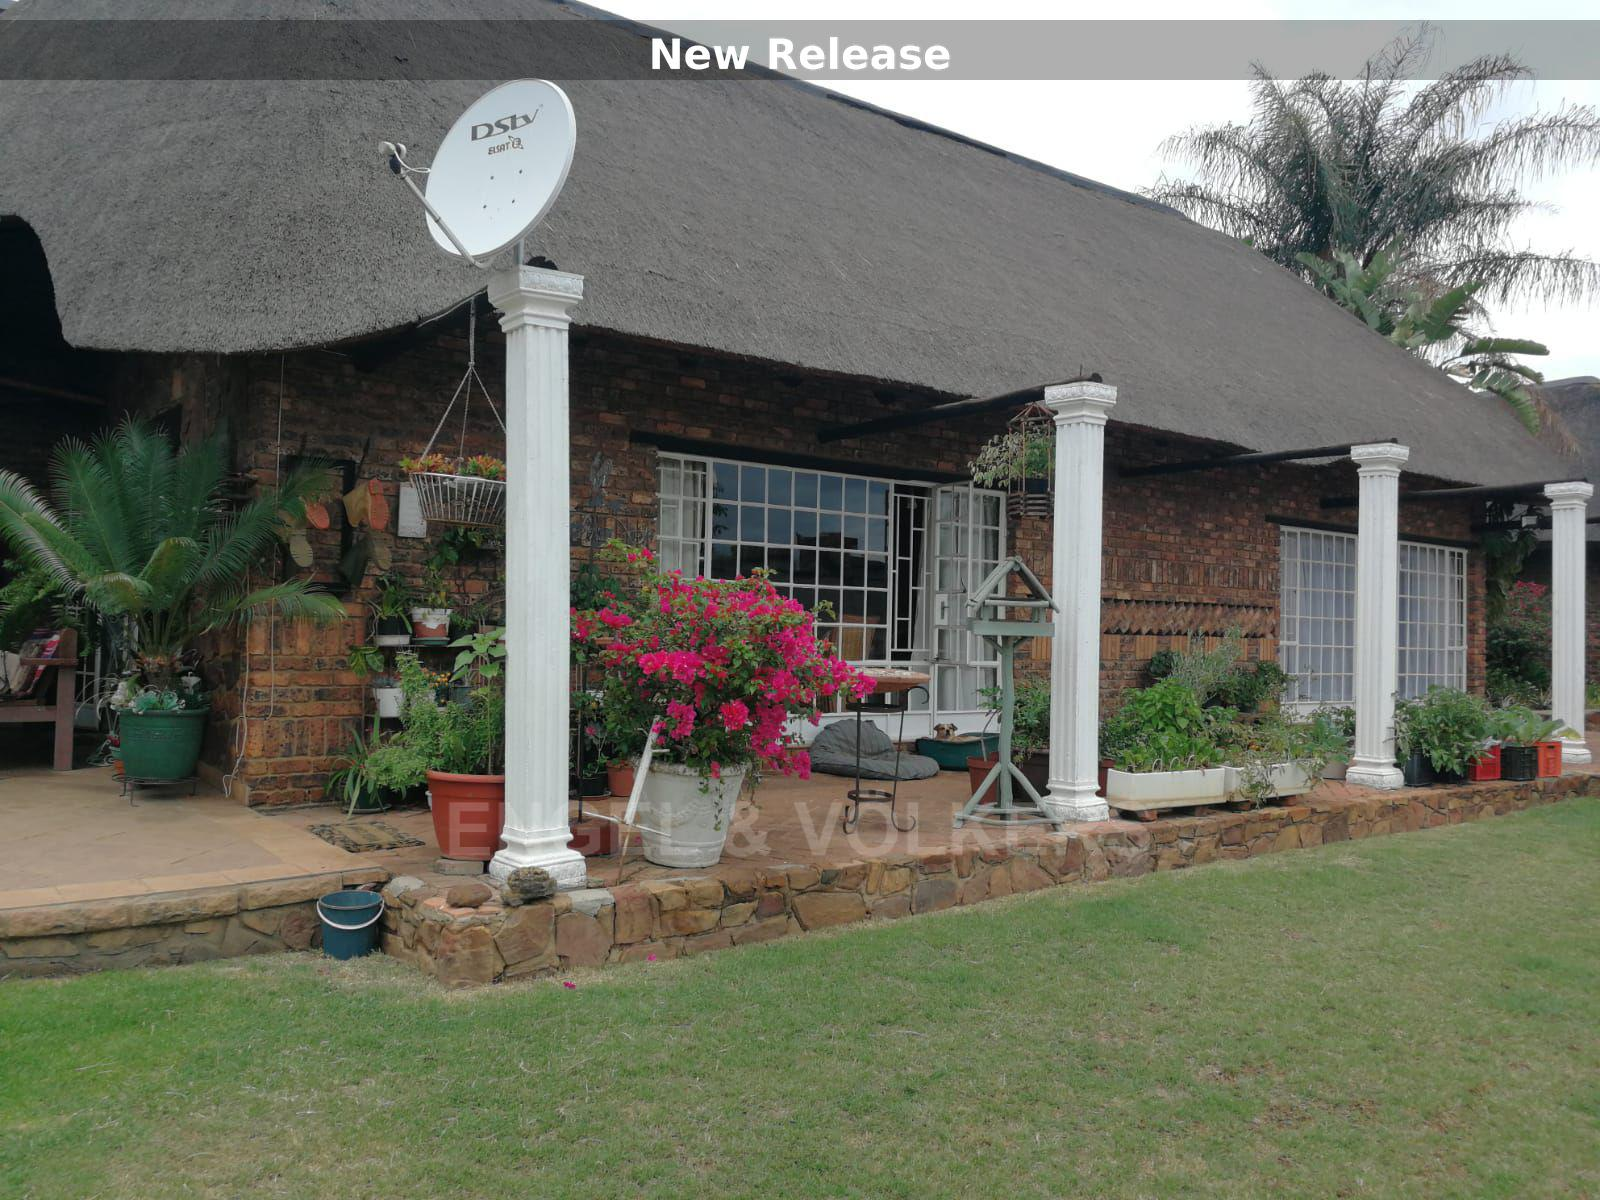 Land in Hartbeespoort Dam Area - Neat and attractive homestead